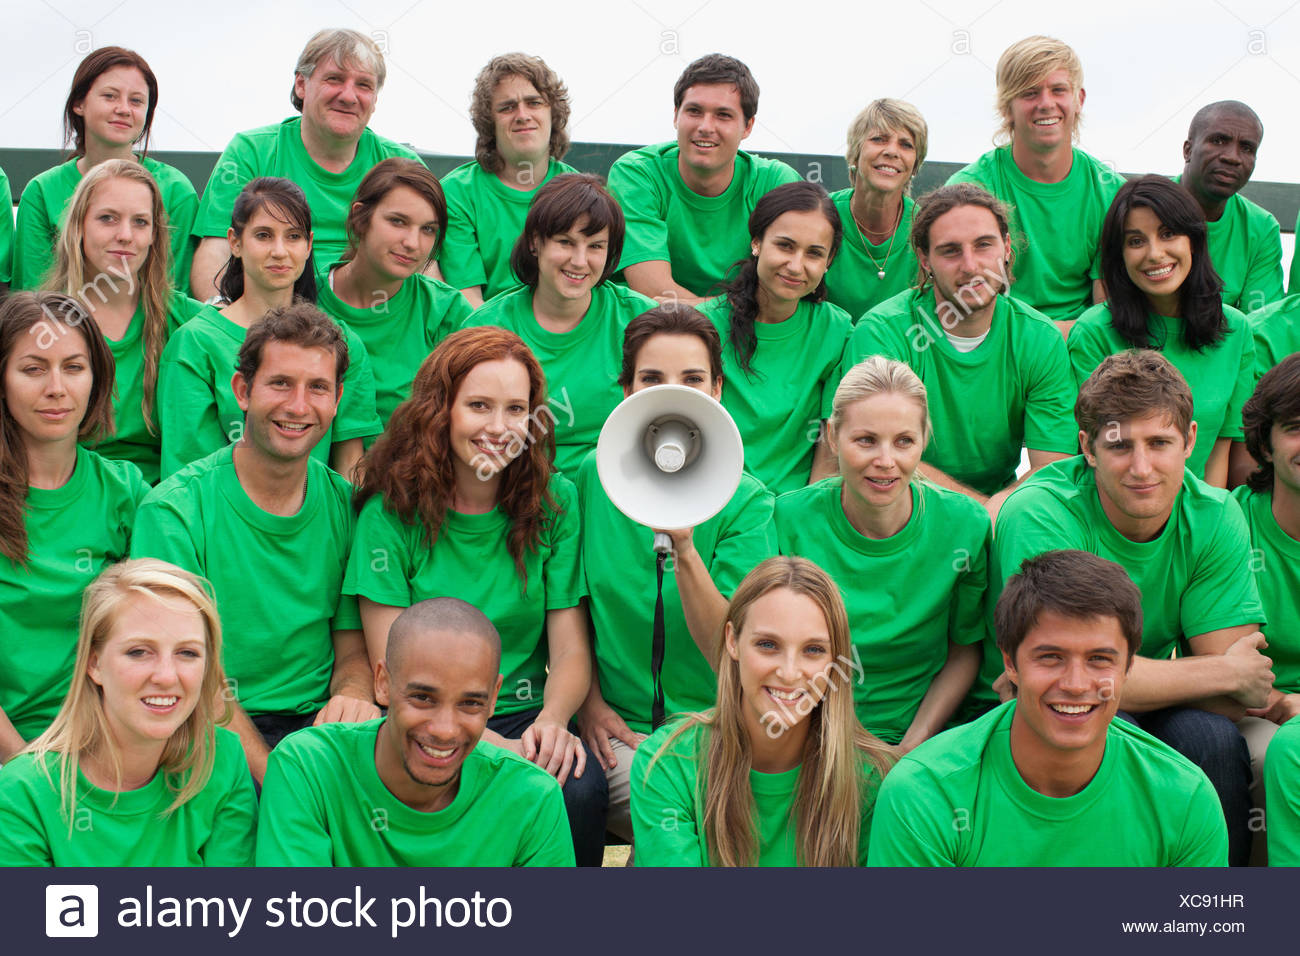 Group of spectators, one person using megaphone - Stock Image